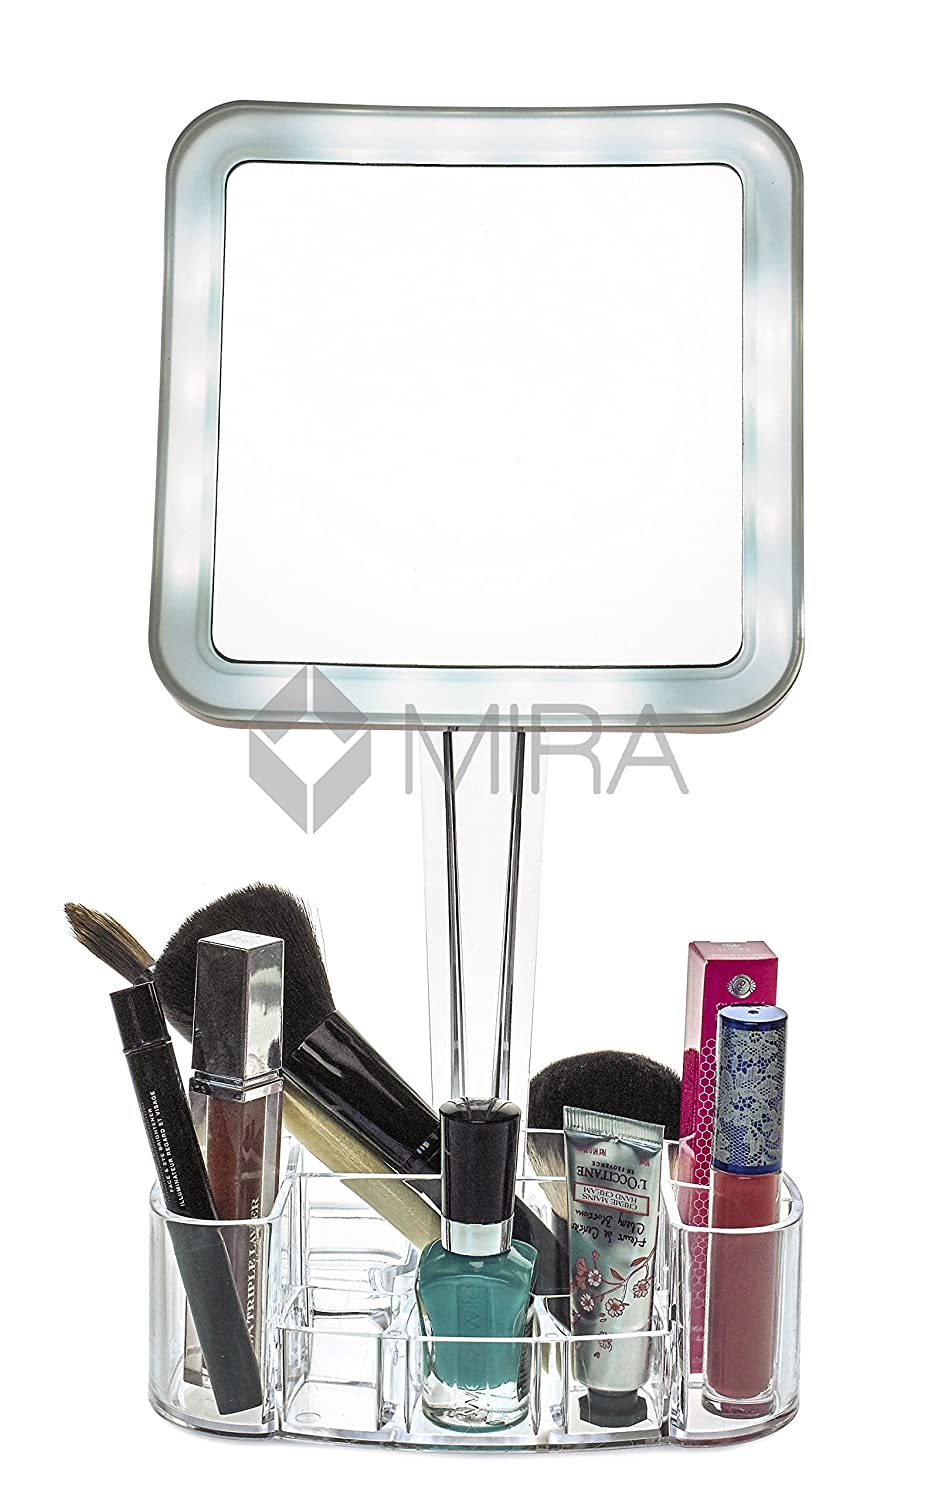 Amazon com   daisi Magnifying Lighted Makeup Mirror with Cosmetic Organizer  Base   7X Magnification  LED Lighted Free Standing Bathroom Mirror for  Vanity   Amazon com   daisi Magnifying Lighted Makeup Mirror with Cosmetic  . Portable Vanity Mirror With Lights. Home Design Ideas